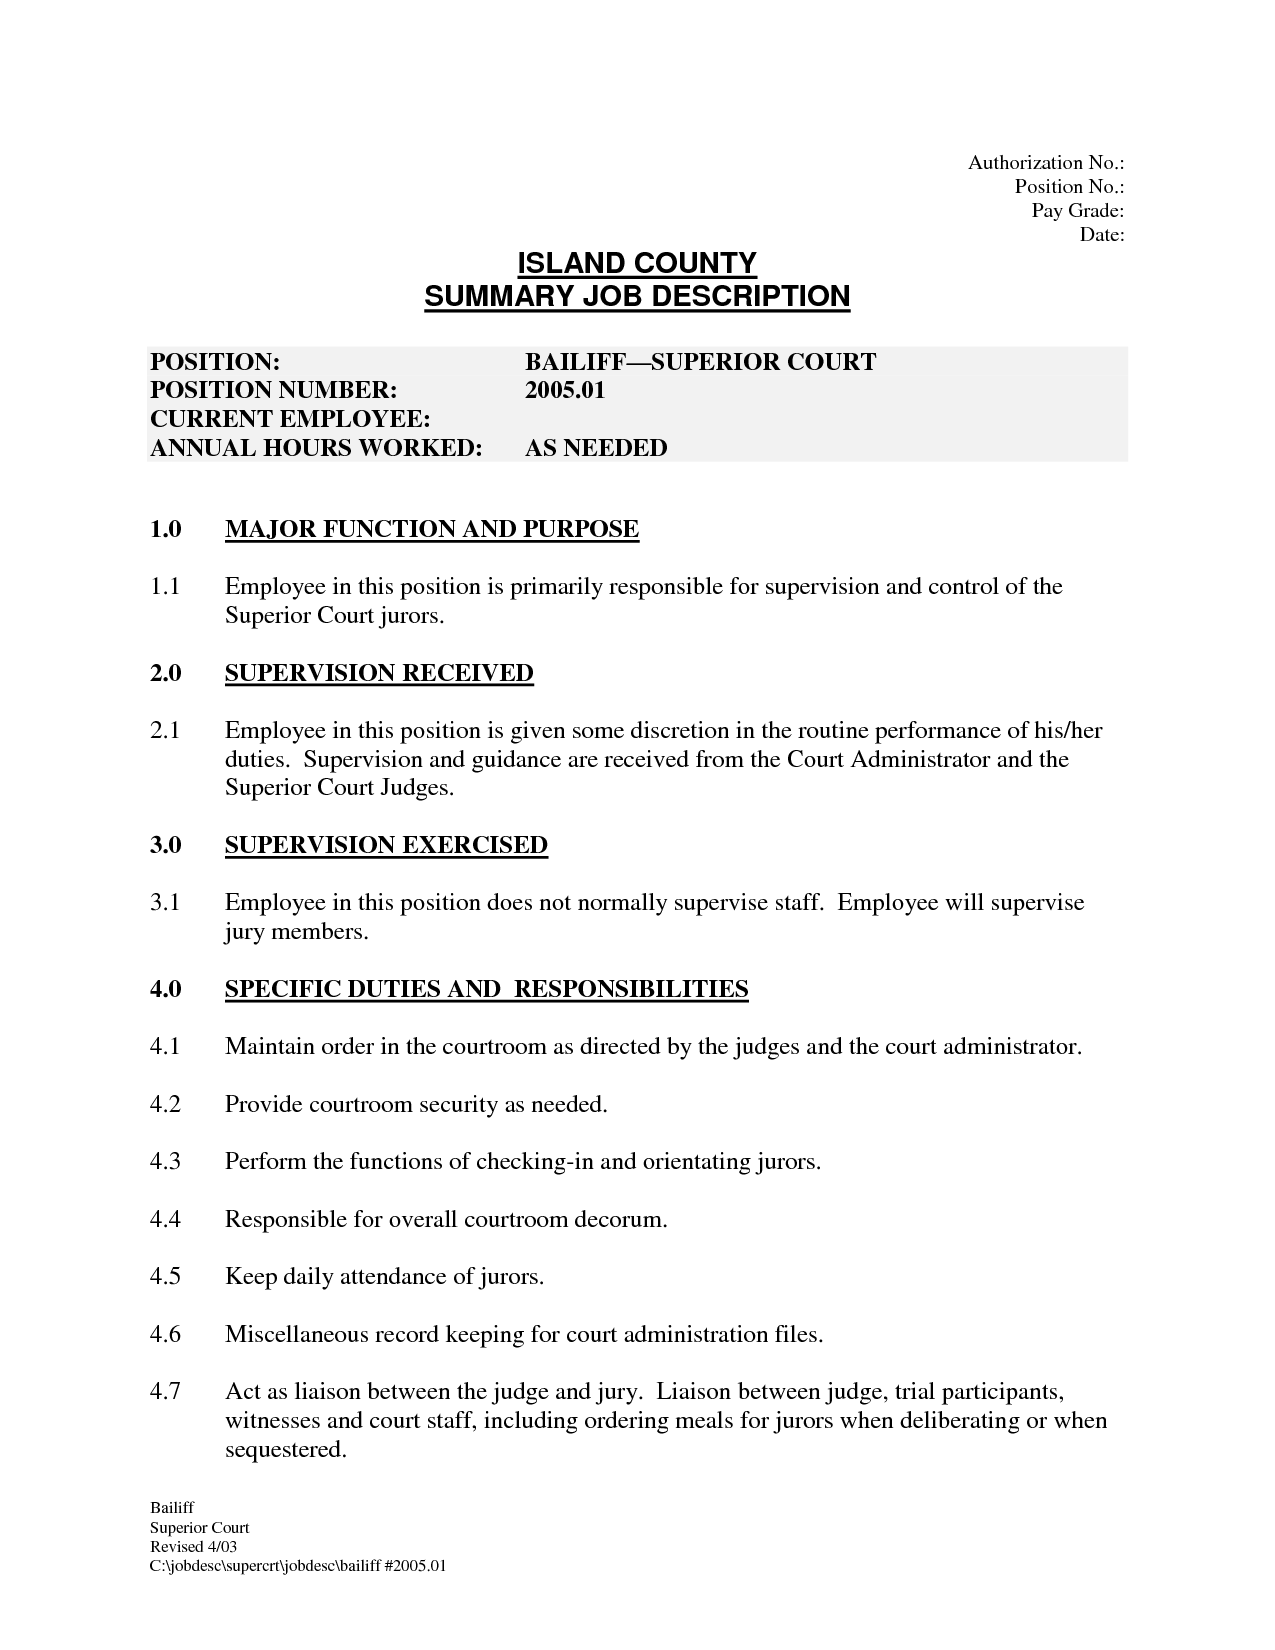 Blank Job Description Template    Is Help Us Grow By Sharing